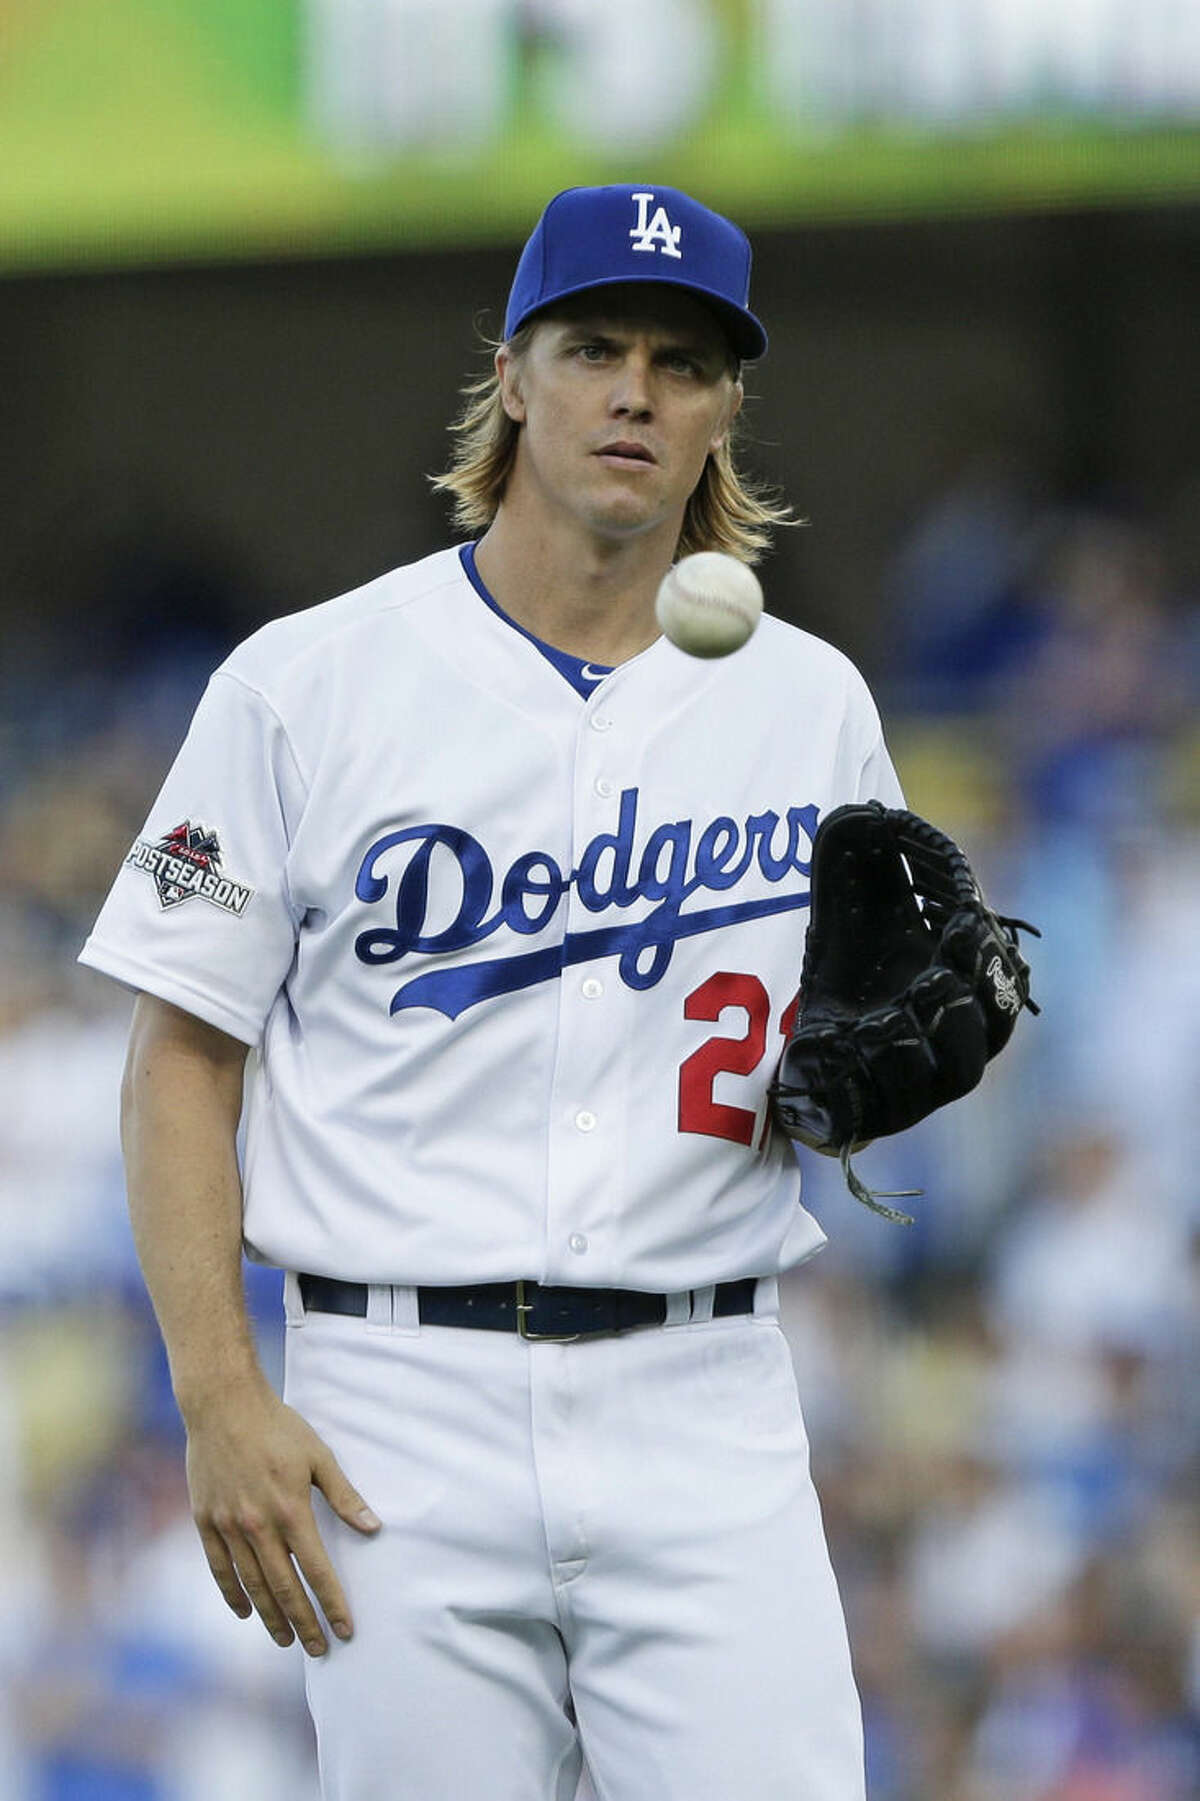 In this Oct. 15, 2015 photo, Los Angeles Dodgers starting pitcher Zack Greinke takes a moment before facing his first New York Mets batter during the first inning in Game 5 of baseball's National League Division Series in Los Angeles. A person with knowledge of the deal tells The Associated Press that free agent Greinke and the Arizona Diamondbacks have reached agreement on a six-year contract. The person spoke to the AP on condition of anonymity Friday night, Dec.4, 2015, because there had not been an official announcement. (AP Photo/Lenny Ignelzi)